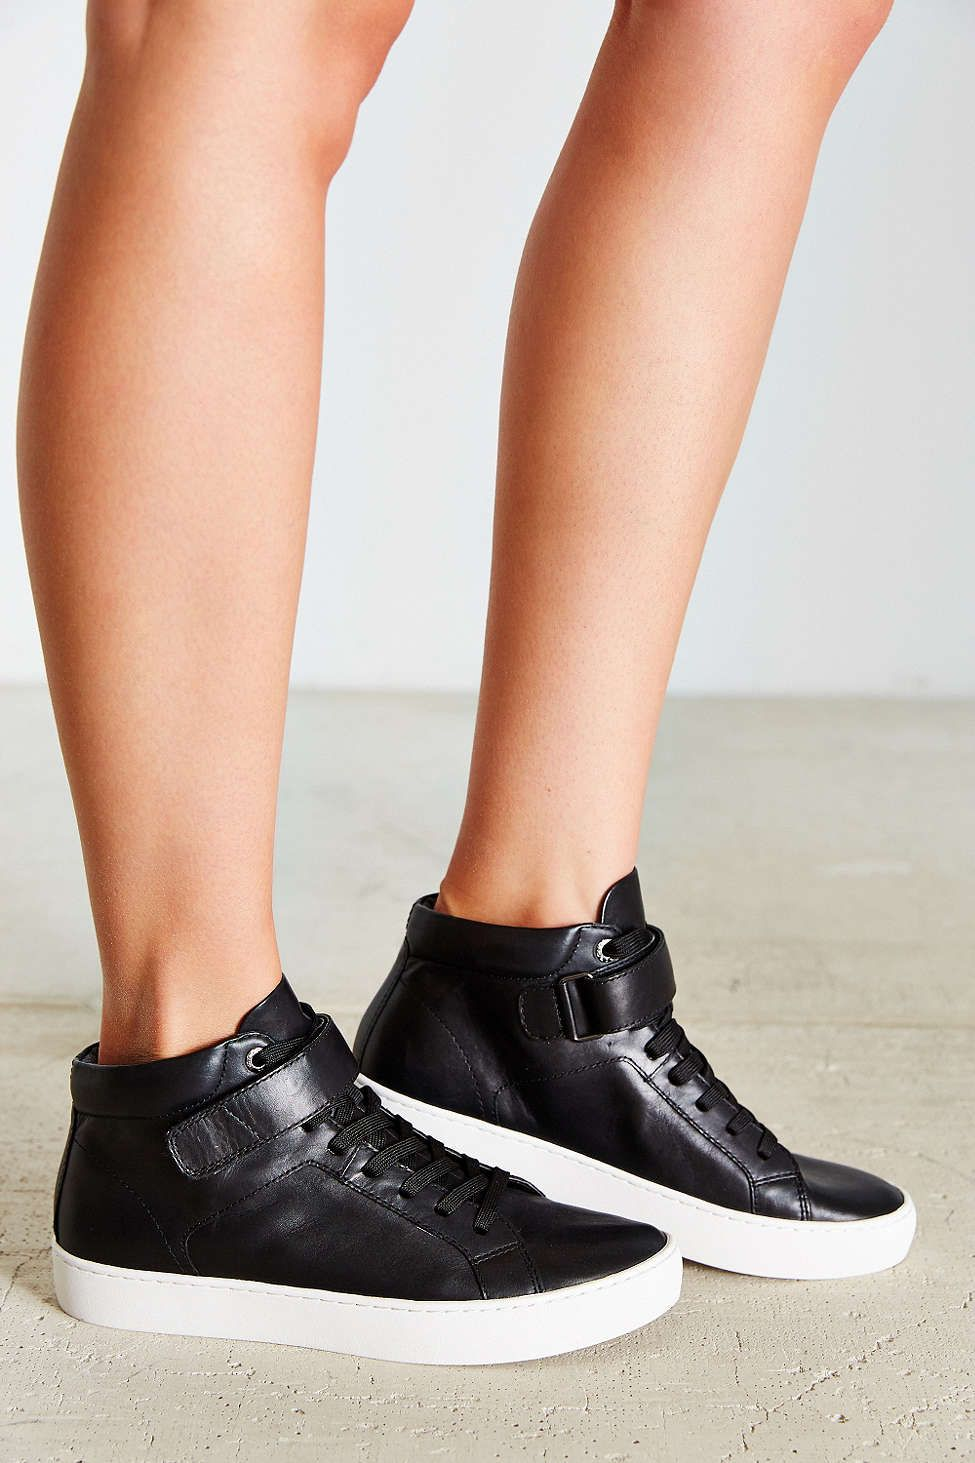 Vagabond Zoe High-Top Sneaker - Urban Outfitters